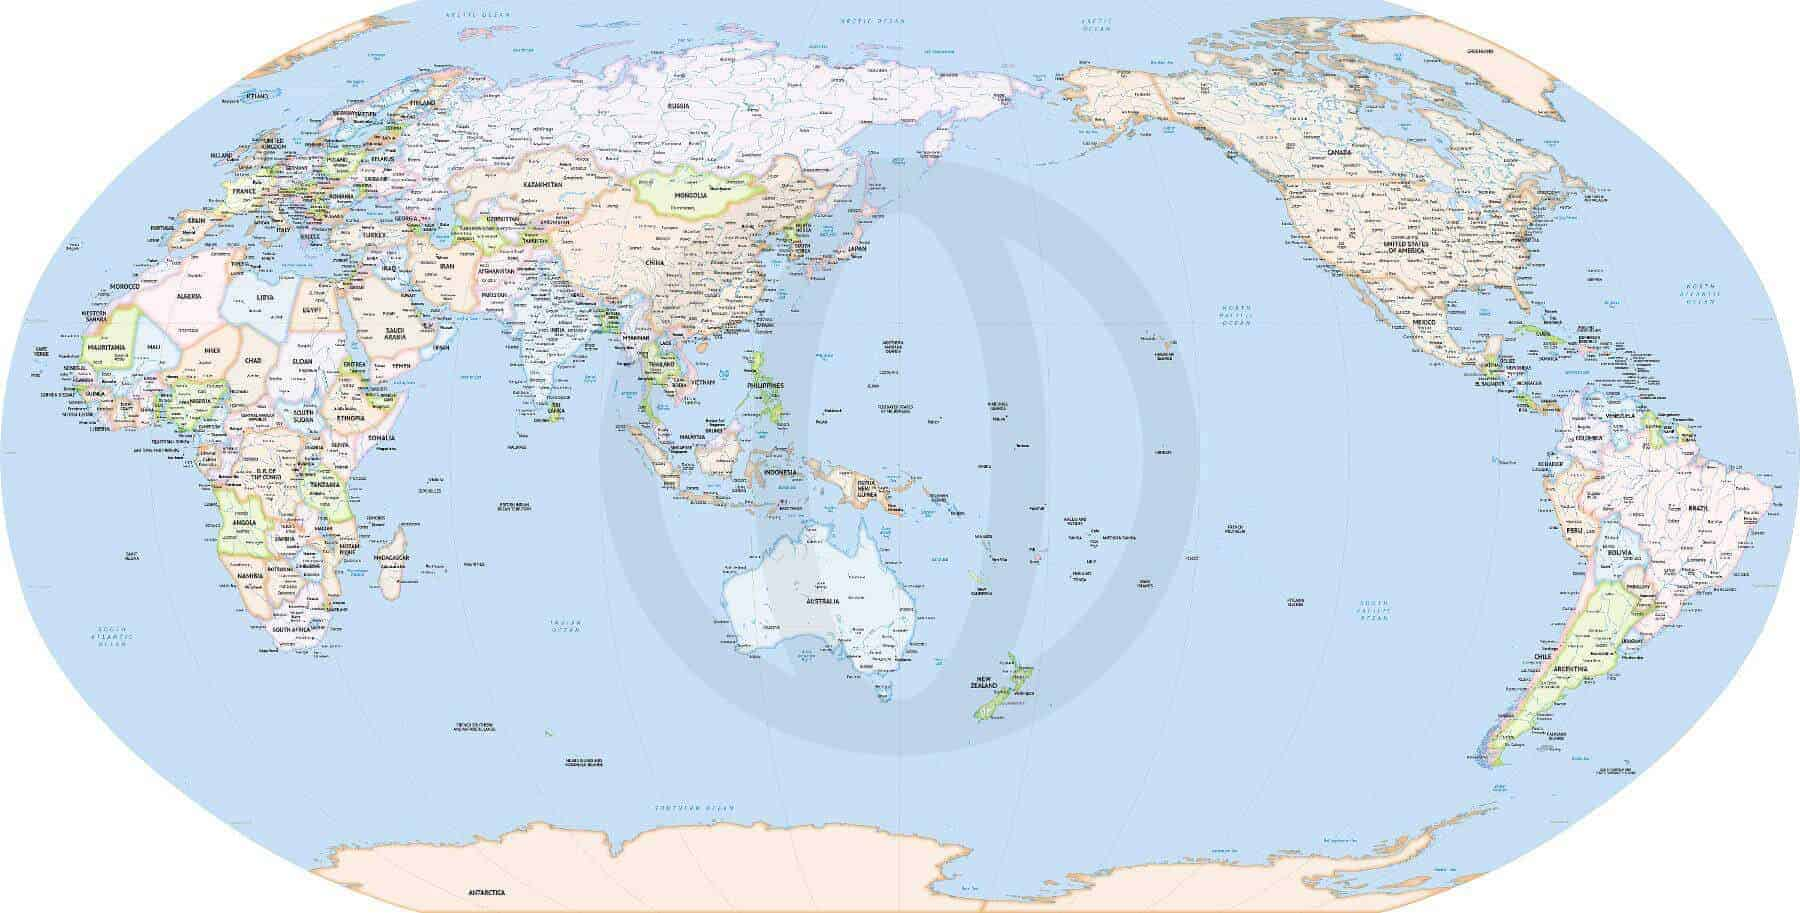 Australia In World Map.Formal Map Of The World Political High Detail Robinson Australia And Asia Centered